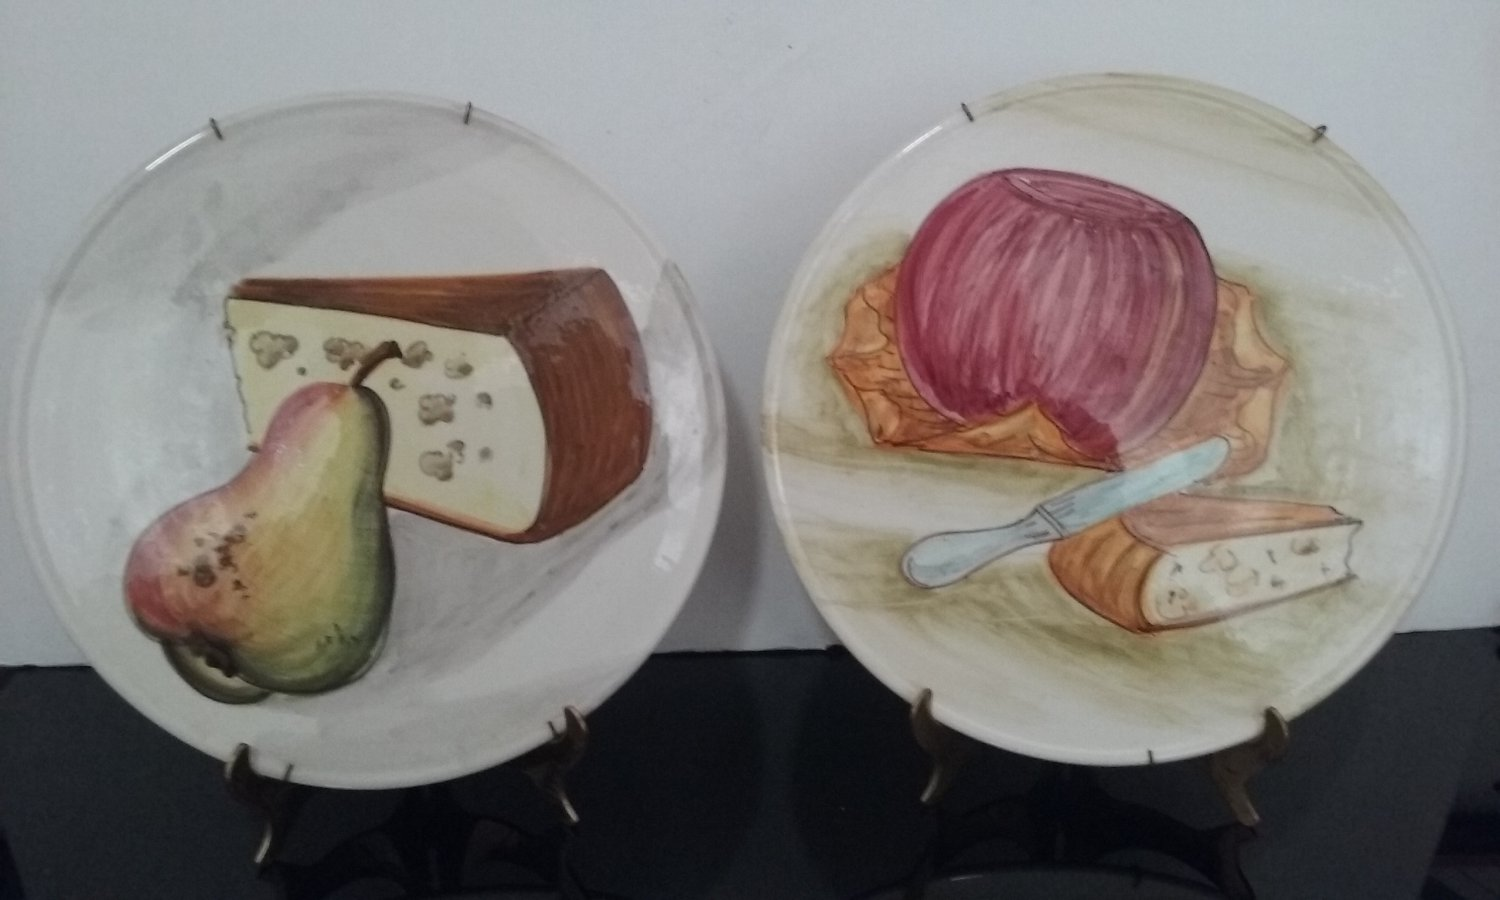 Vintage Set of 2 - Decorative 10' Plates with Hangers - Made in Italy     (1487)